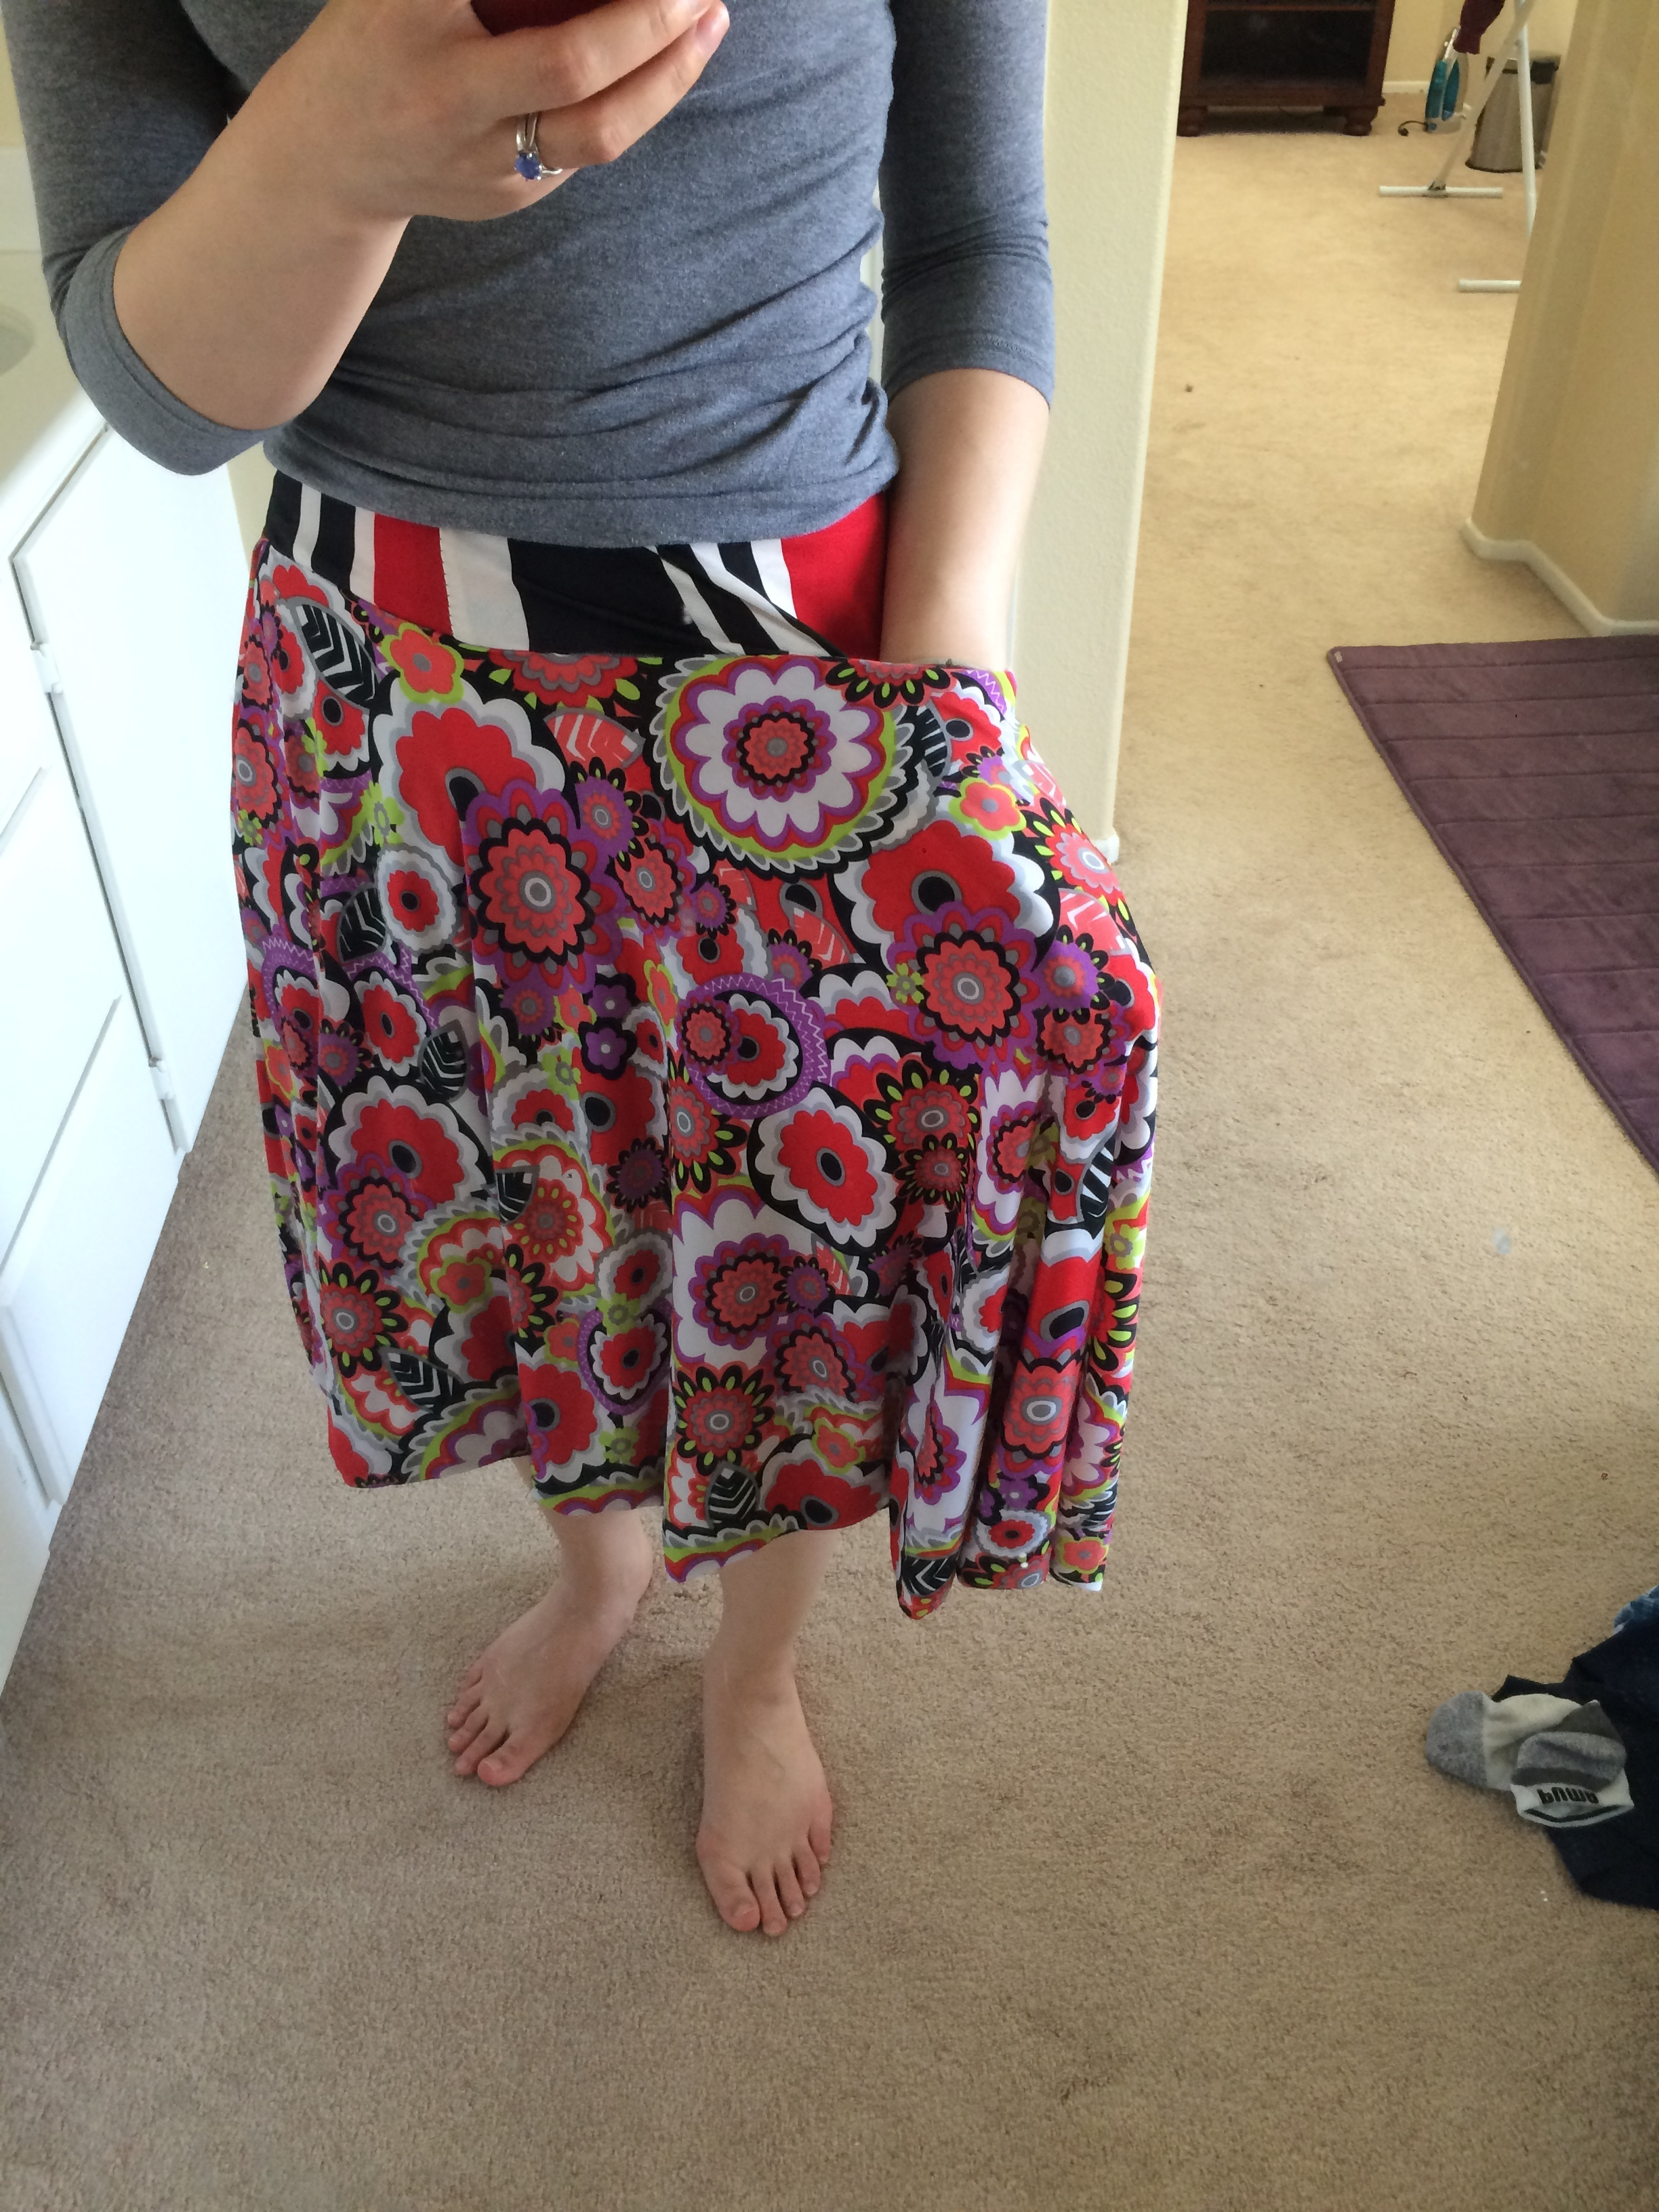 Showing off my pocket again! I love making pockets :-) All skirts should have pockets!